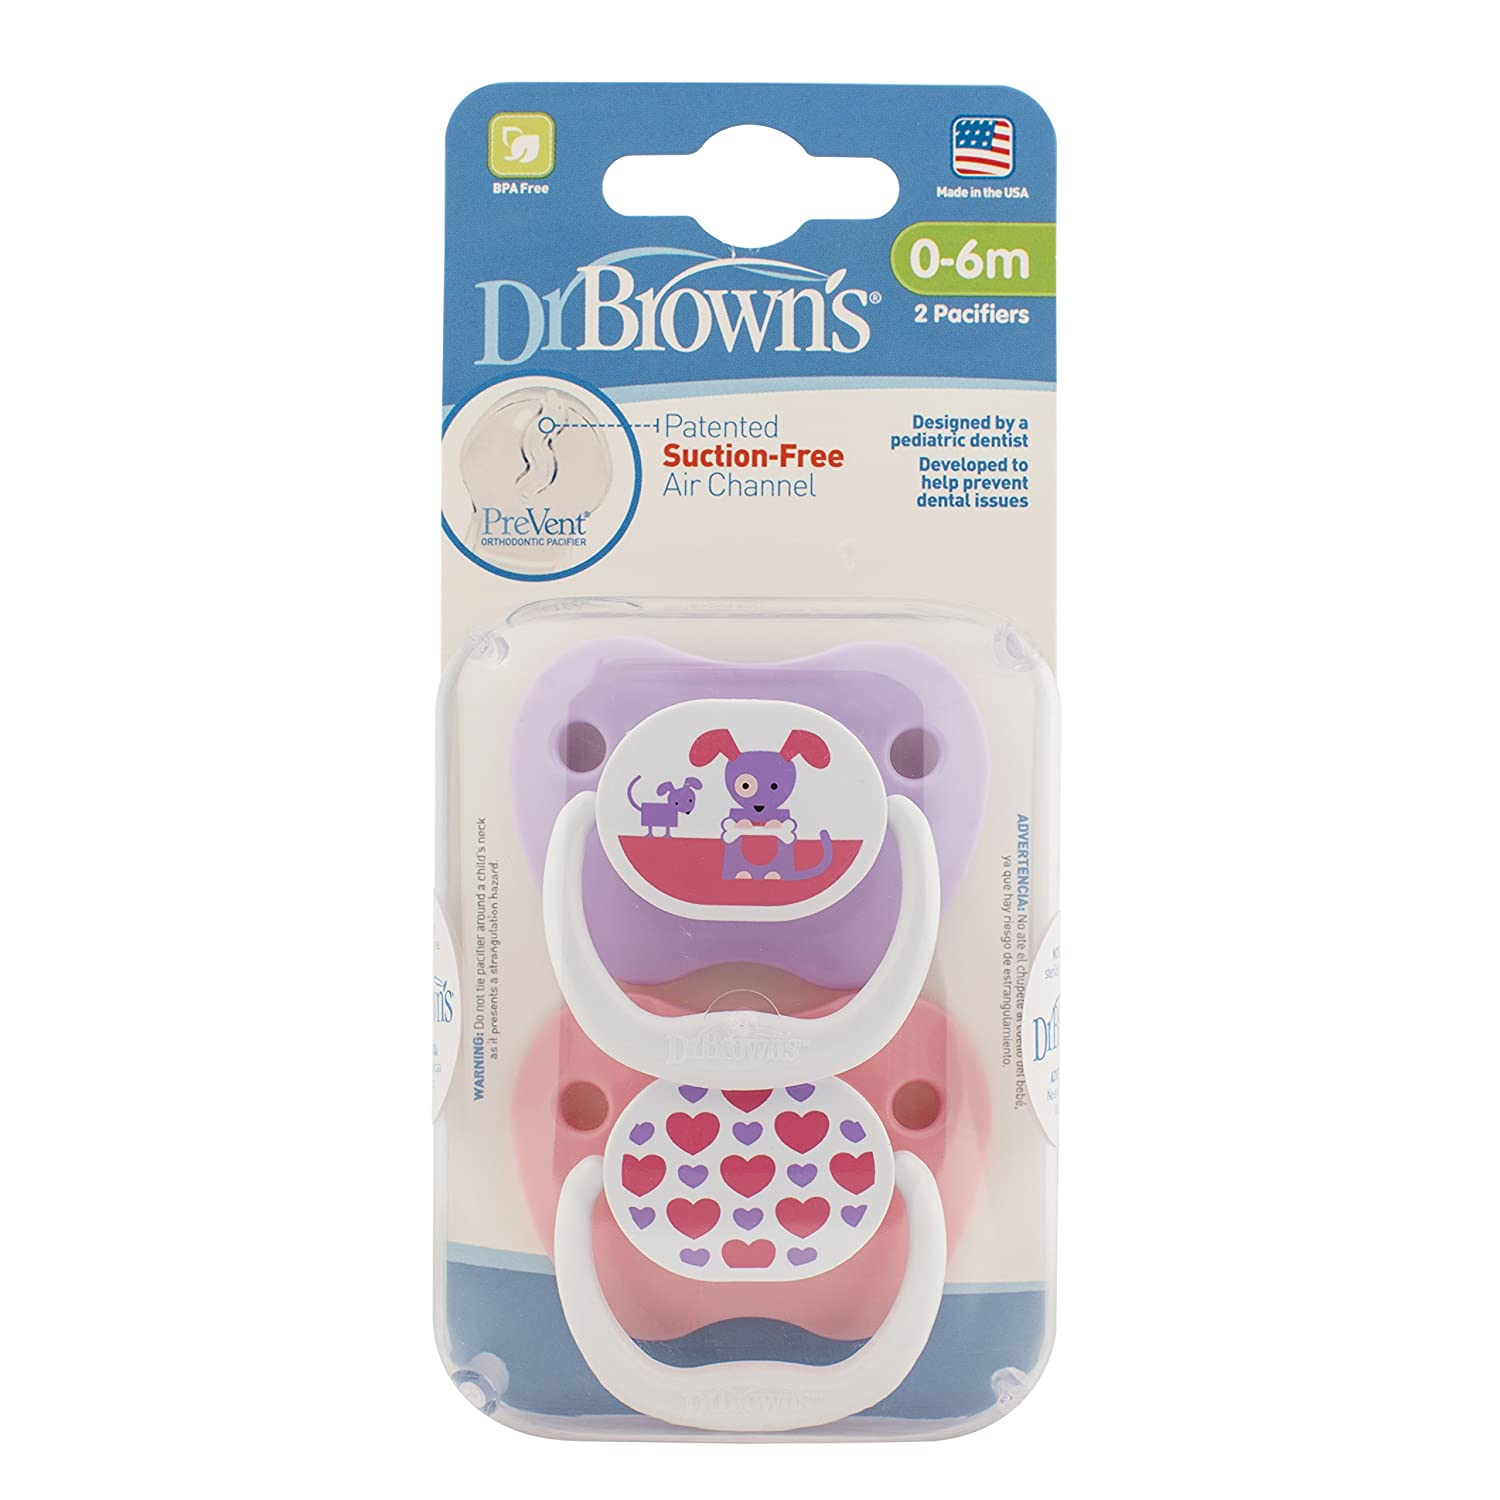 Dr. Browns Prevent Classic Pacifier, Stage 1 (0-6m), Unique Blue/Green, 2-Pack